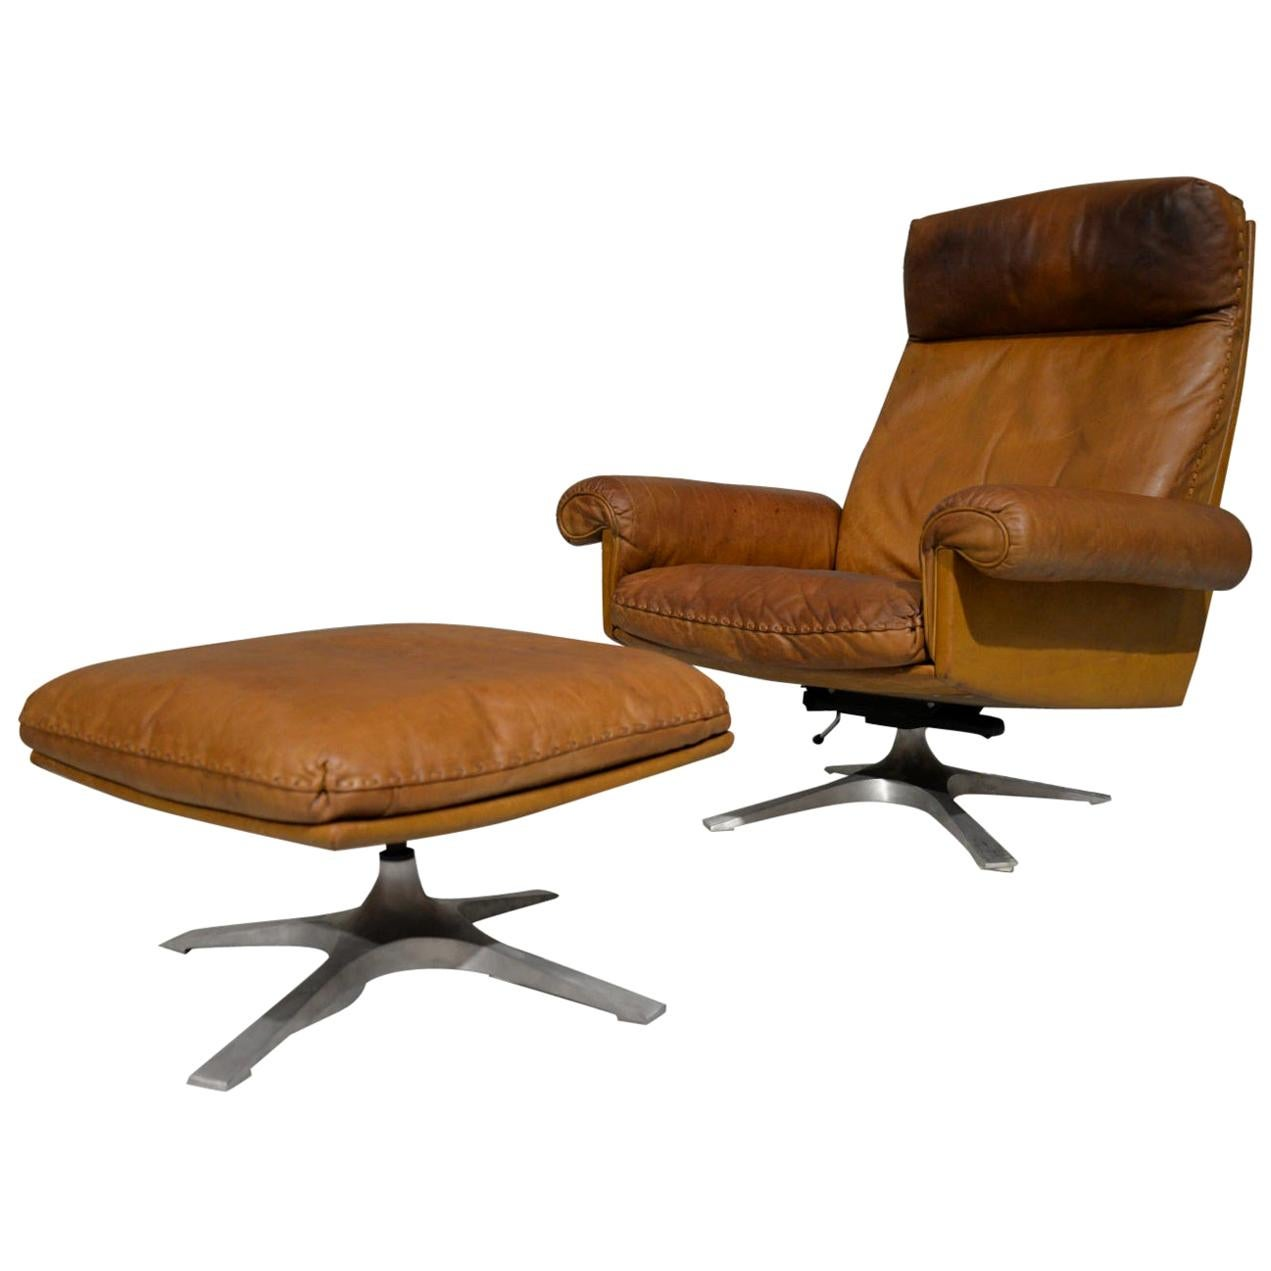 Vintage De Sede DS 31 Leather Swivel Armchair with Ottoman, Switzerland, 1970s